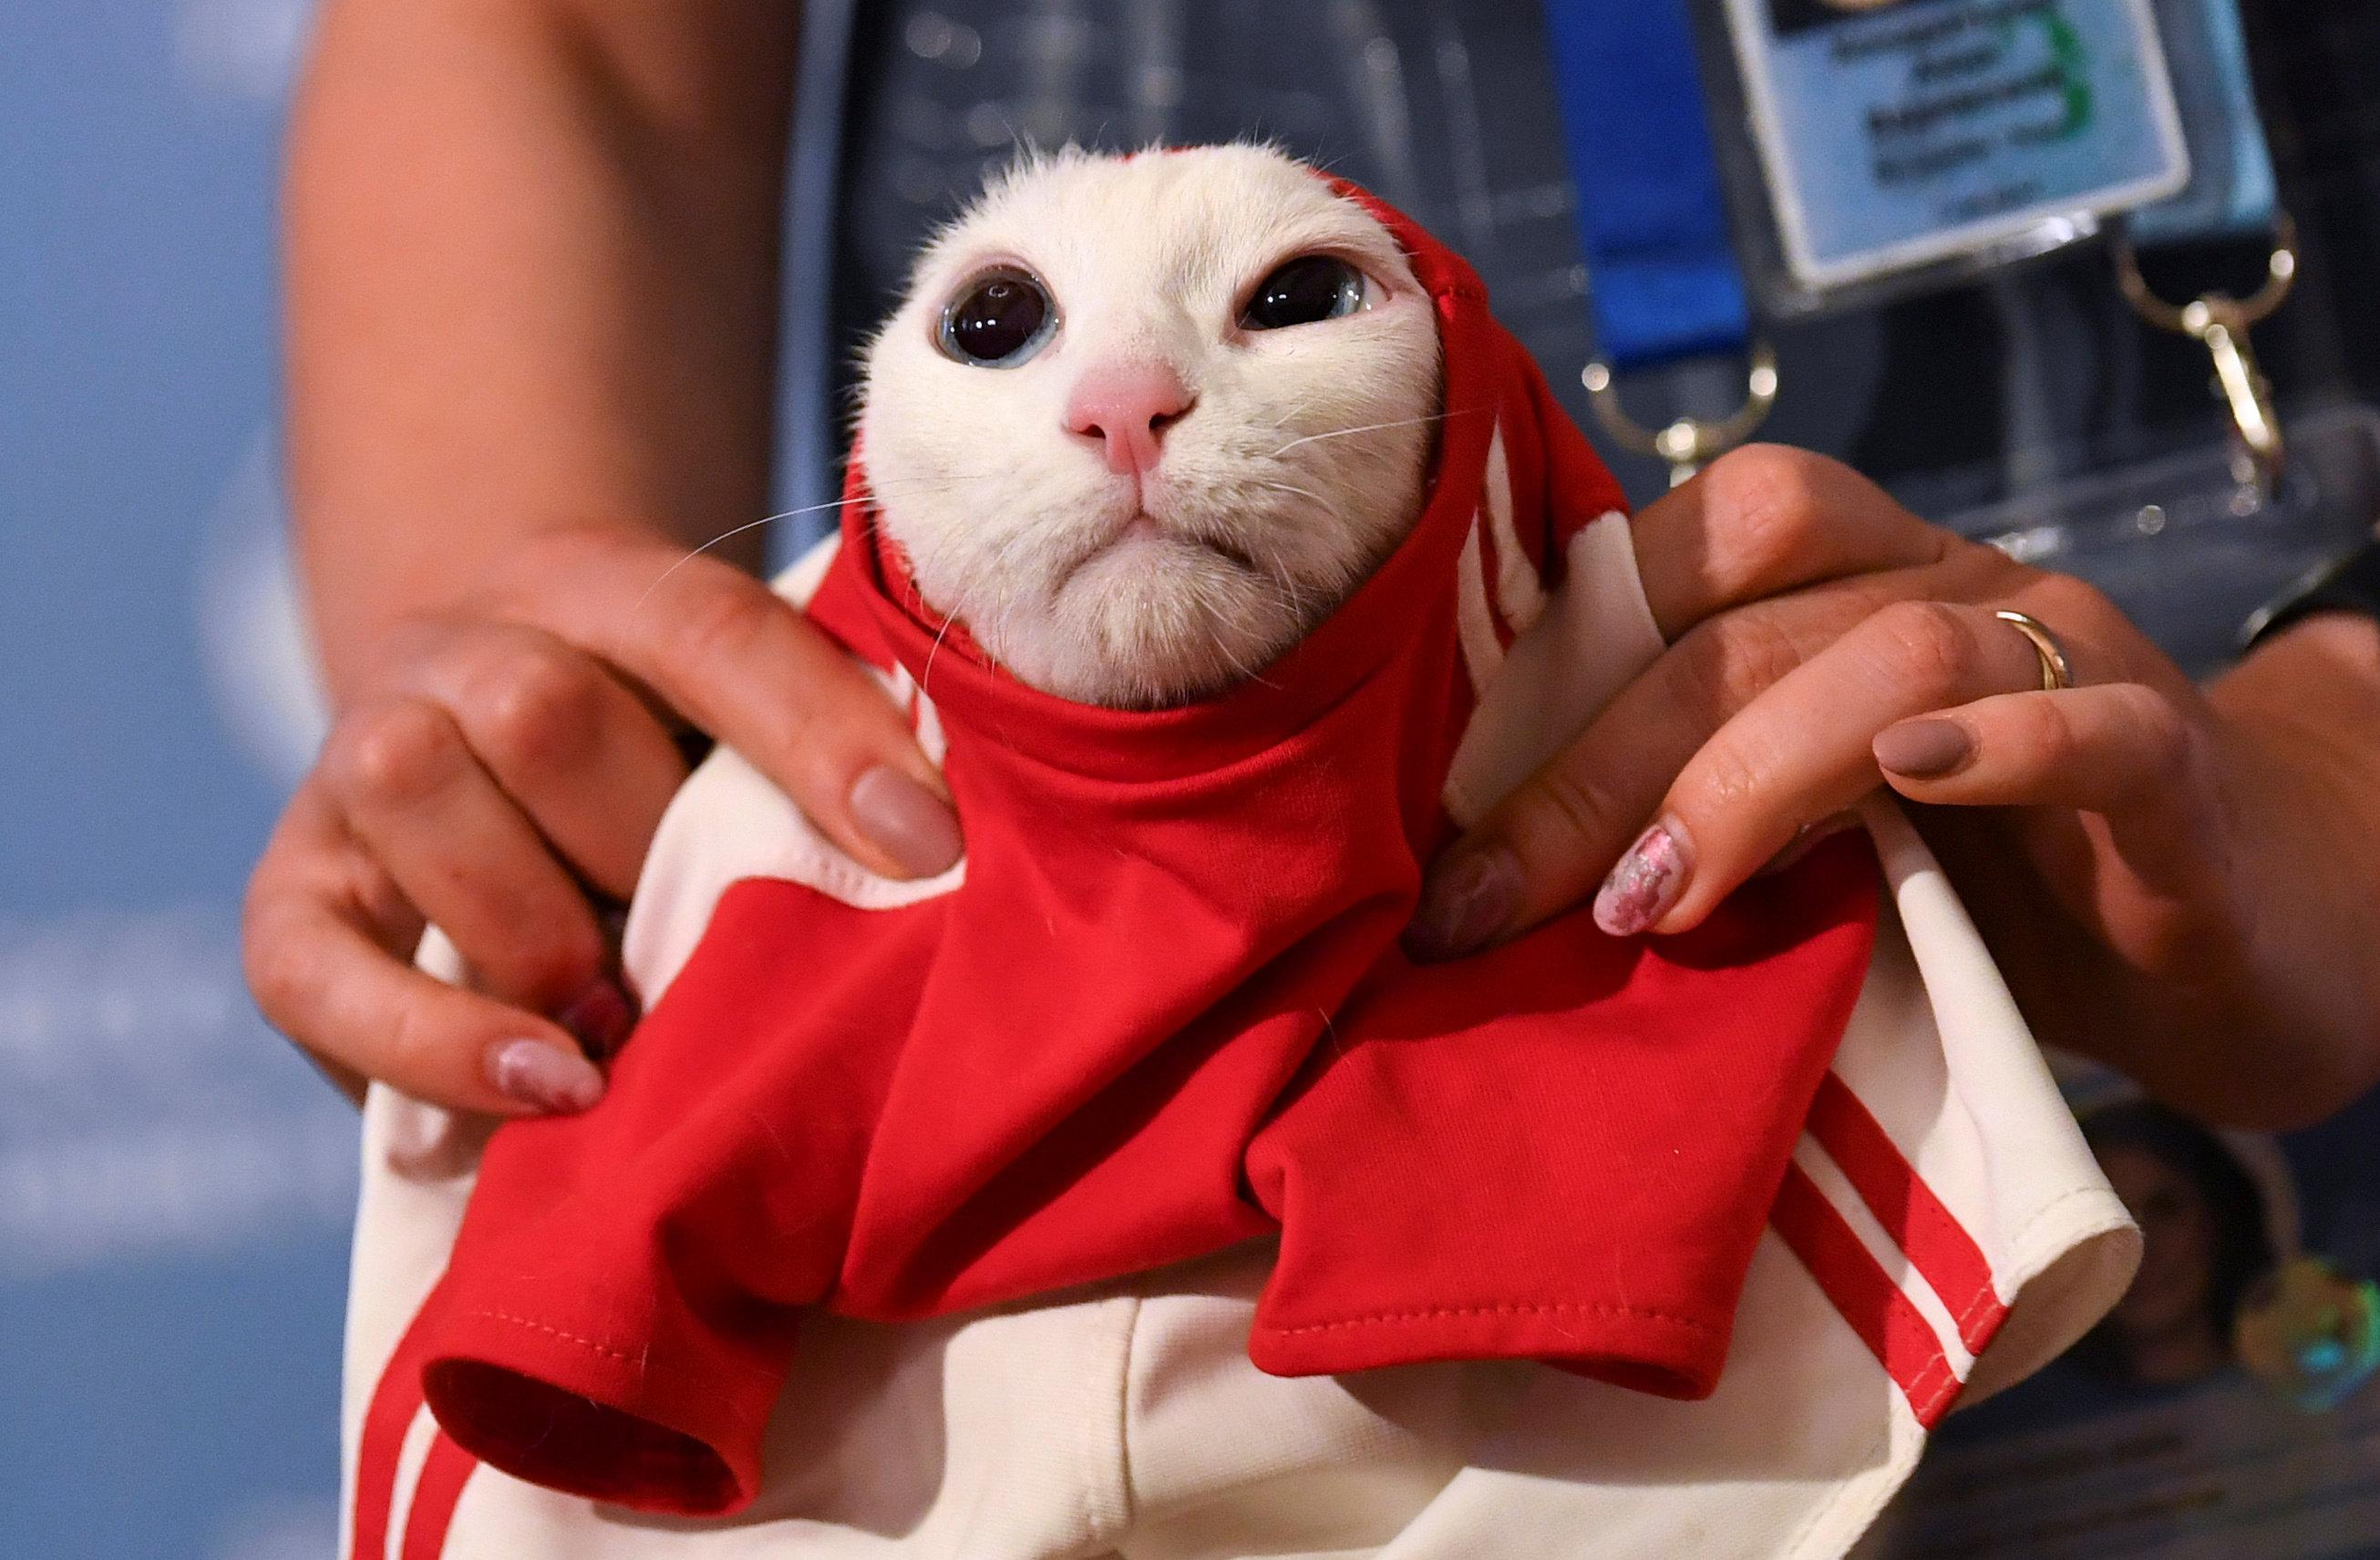 A participant dresses Achilles the cat, one of the State Hermitage Museum mice hunters, which attempts to predict the result of the opening match of the 2018 FIFA World Cup between Russia and Saudi Arabia during an event in Saint Petersburg, Russia June 13, 2018. Dylan Martinez